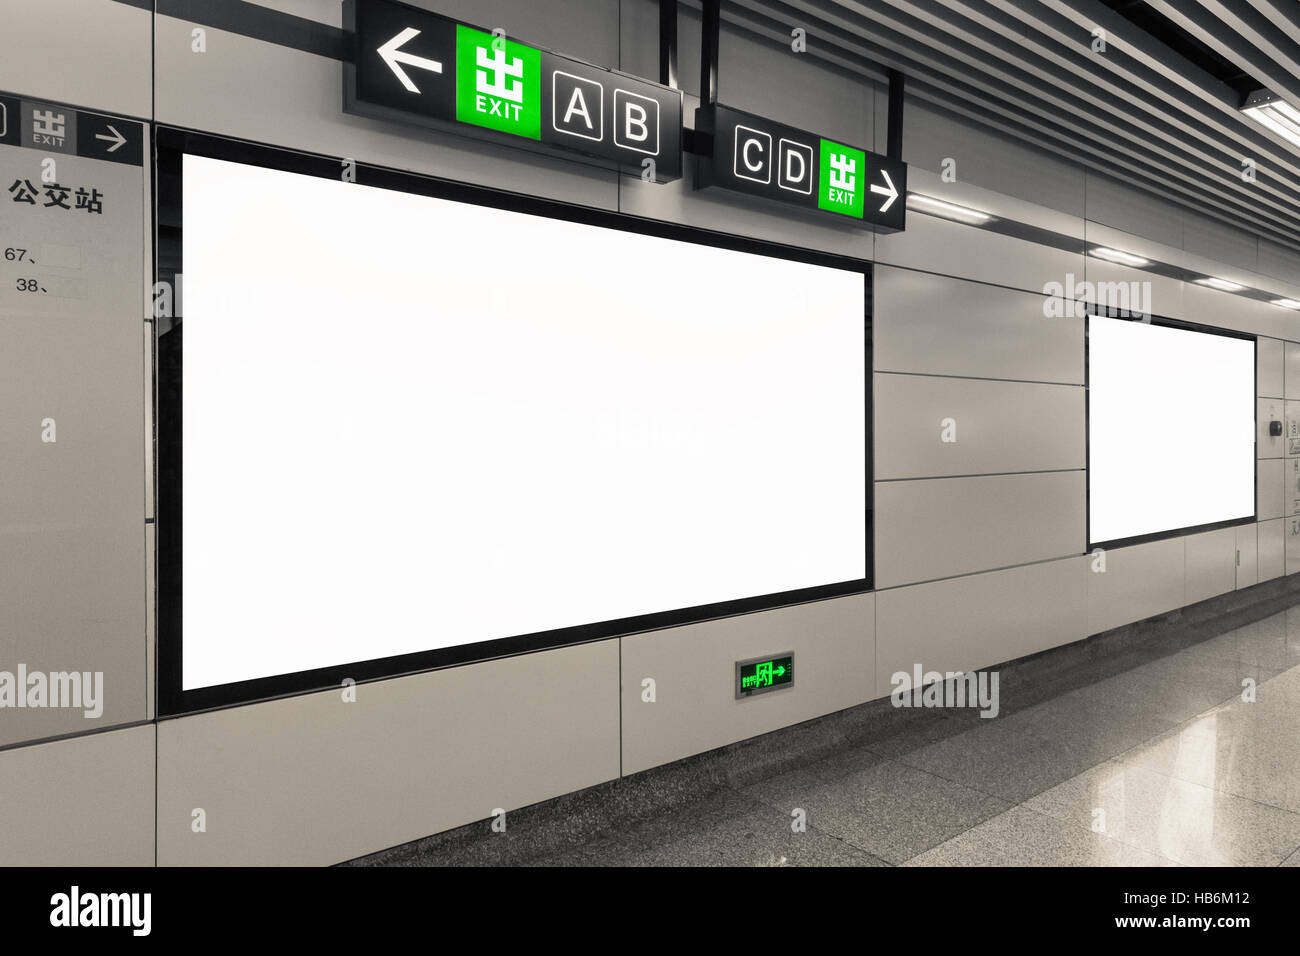 blank billboard in subway station - Stock Image